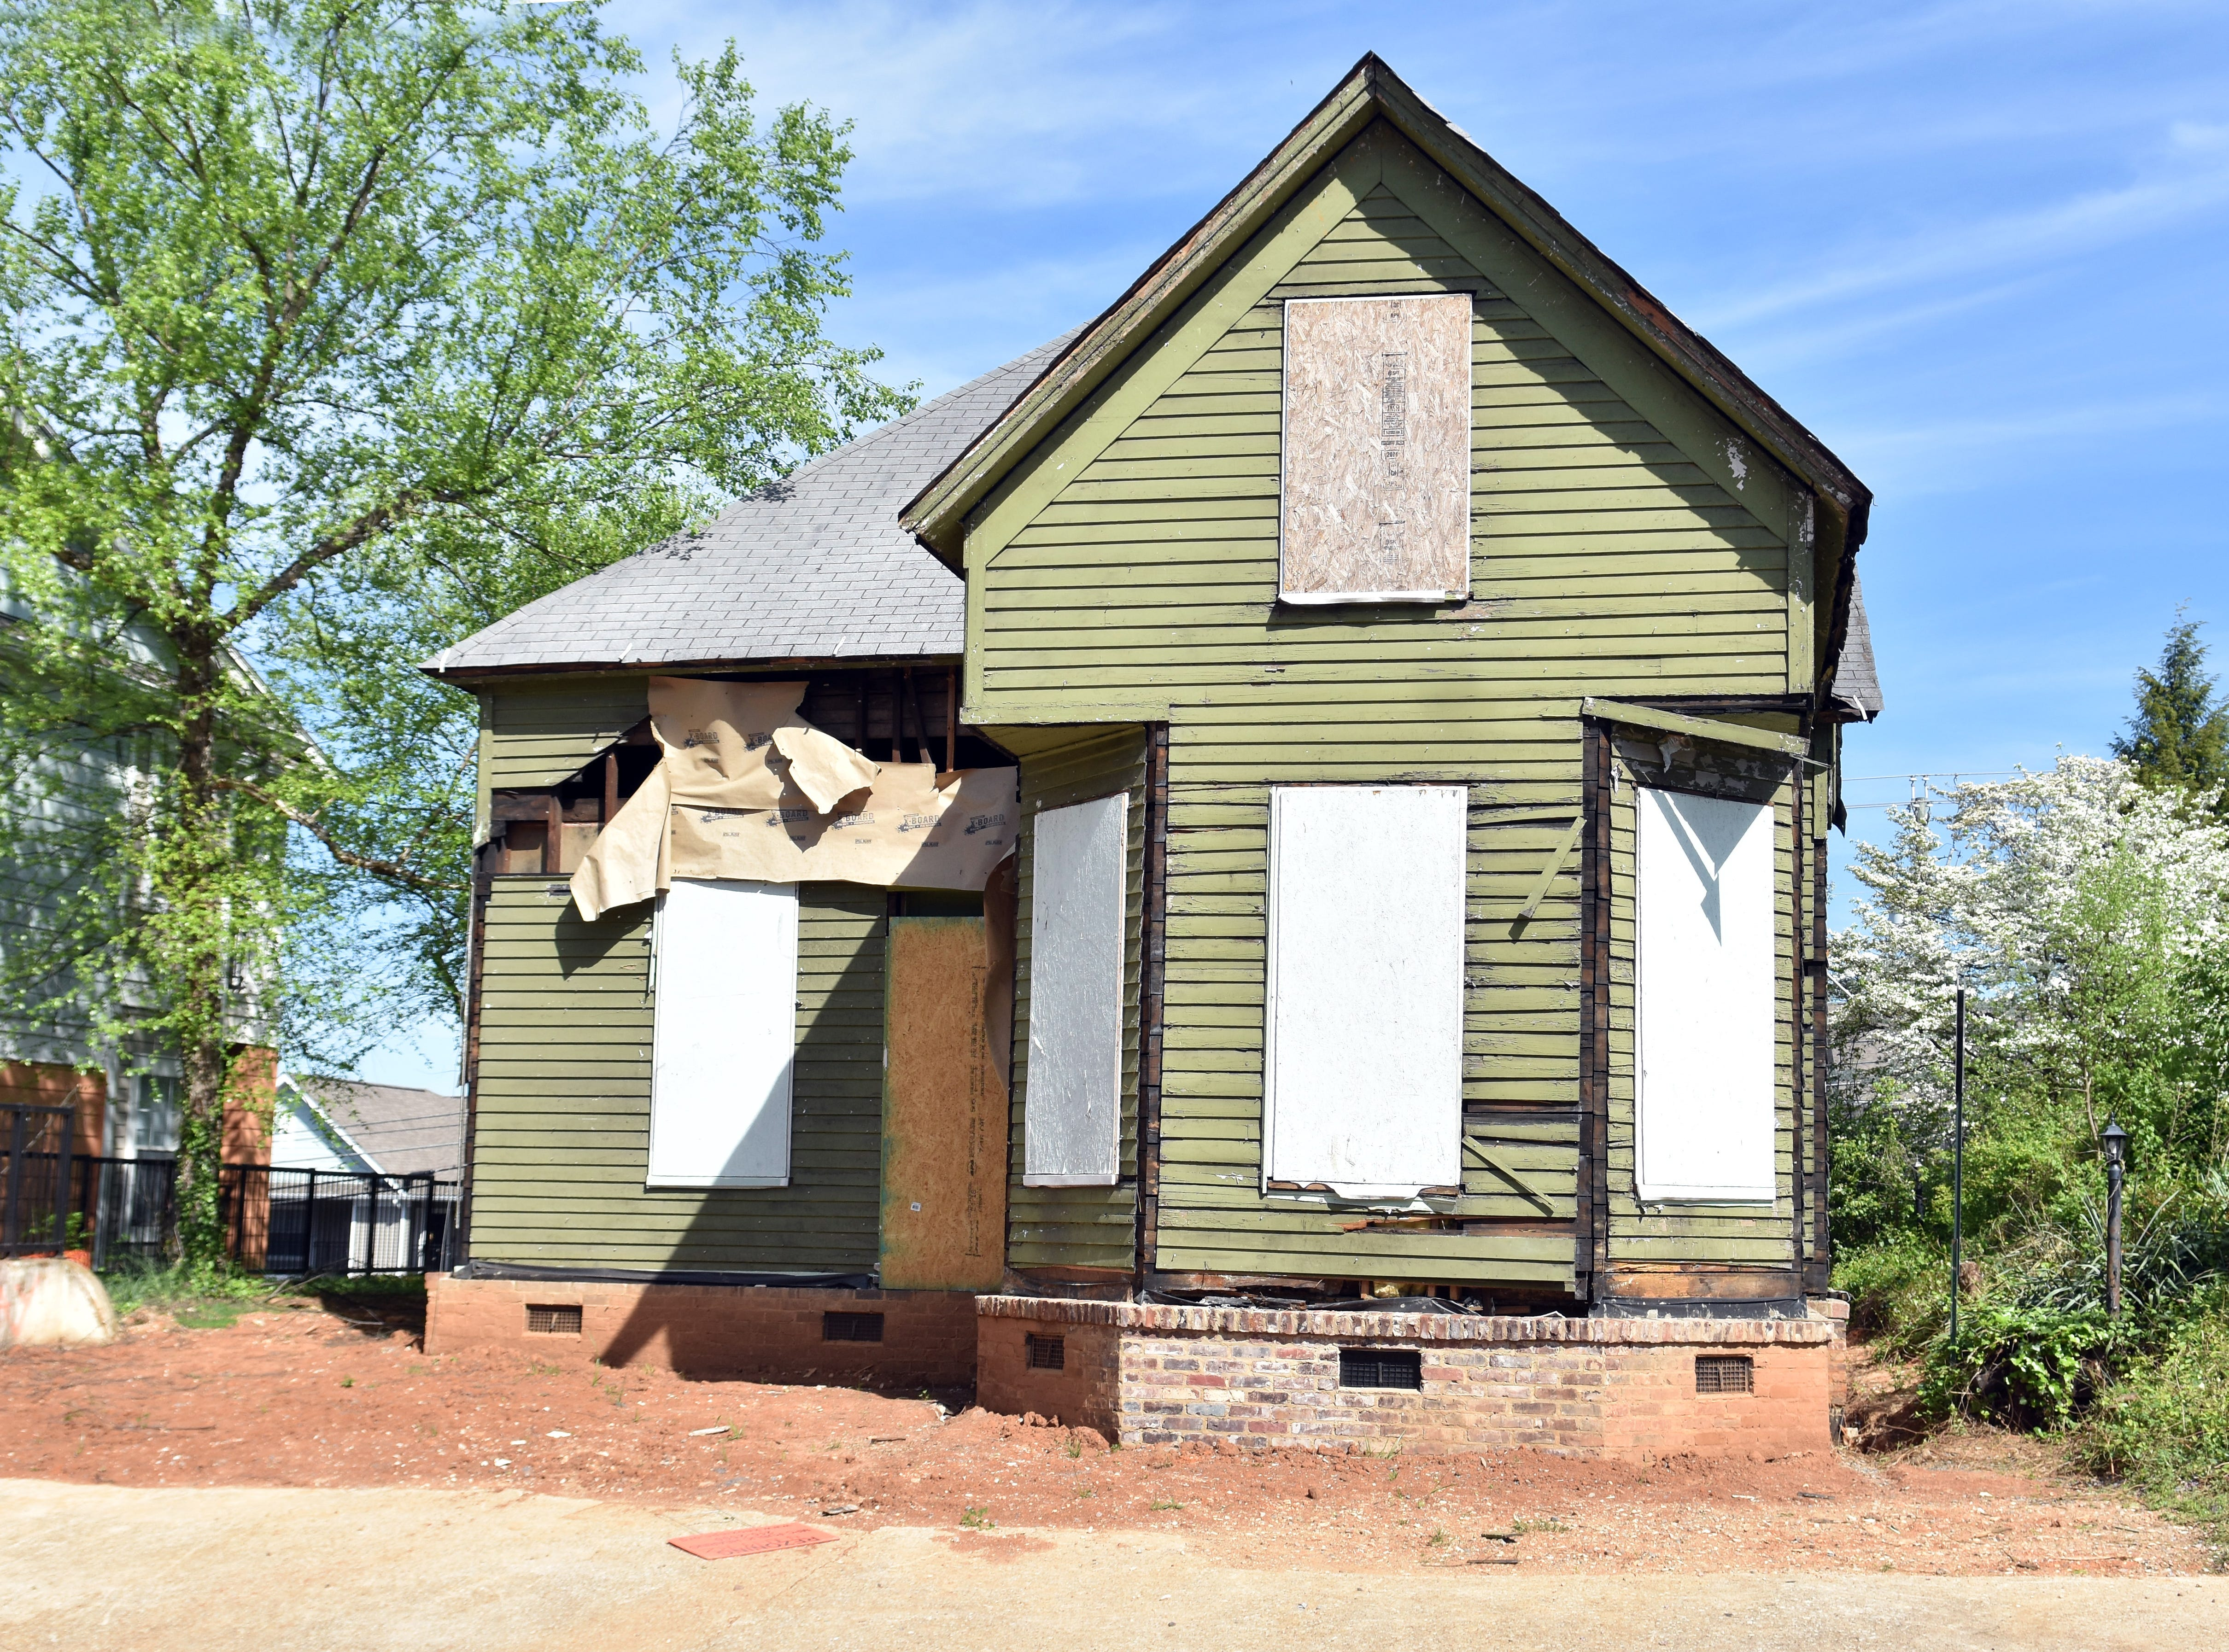 In late 2018, the City helped Knox Heritage move this circa-1900 Queen Anne home from its original address at 1804 Highland Avenue (purchased by Fort Sanders Regional Medical Center to use as a parking lot) across the street to 1815 Highland Avenue. Knox Heritage will restore and renovate the house into rental apartments that will serve as a source of income for the non-profit preservation organization.